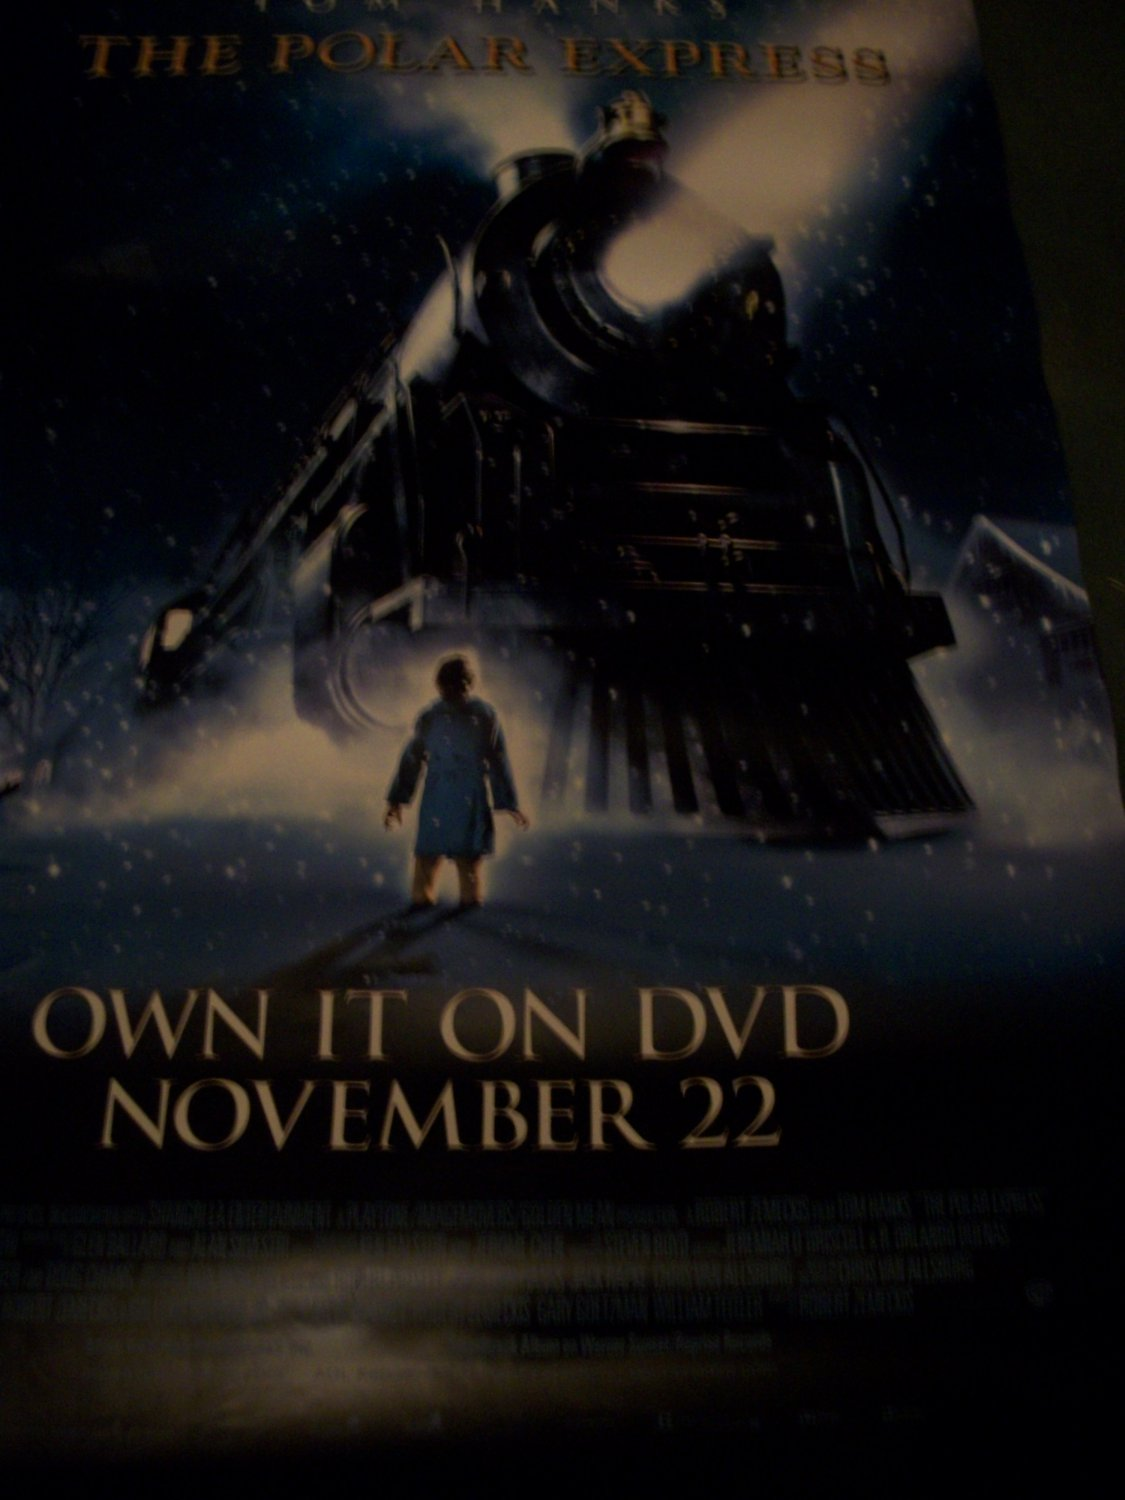 The Polar Express Tom Hanks Original Movie Poster Approx. 4 ft x 5 ft 9 inches